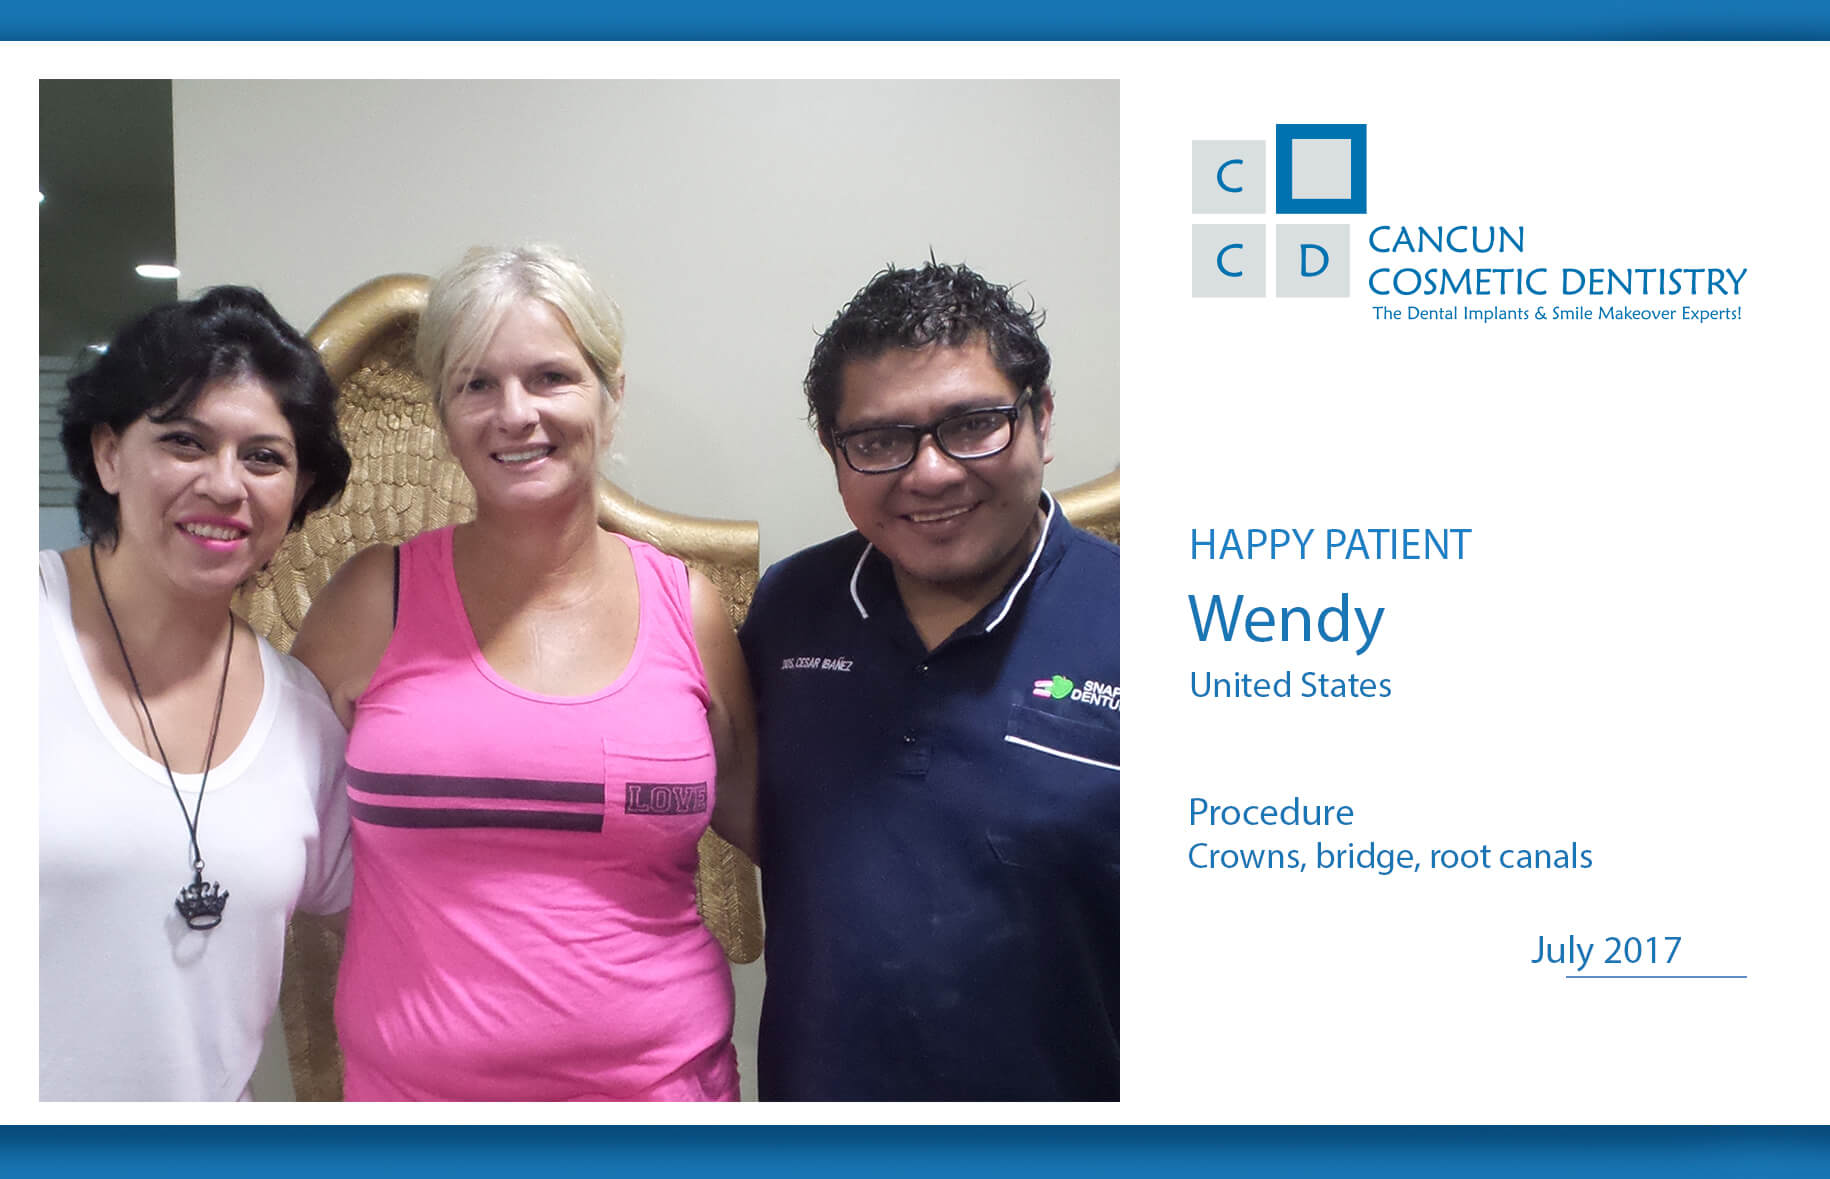 Affordable cosmetic dentistry with the best dentists in Cancun